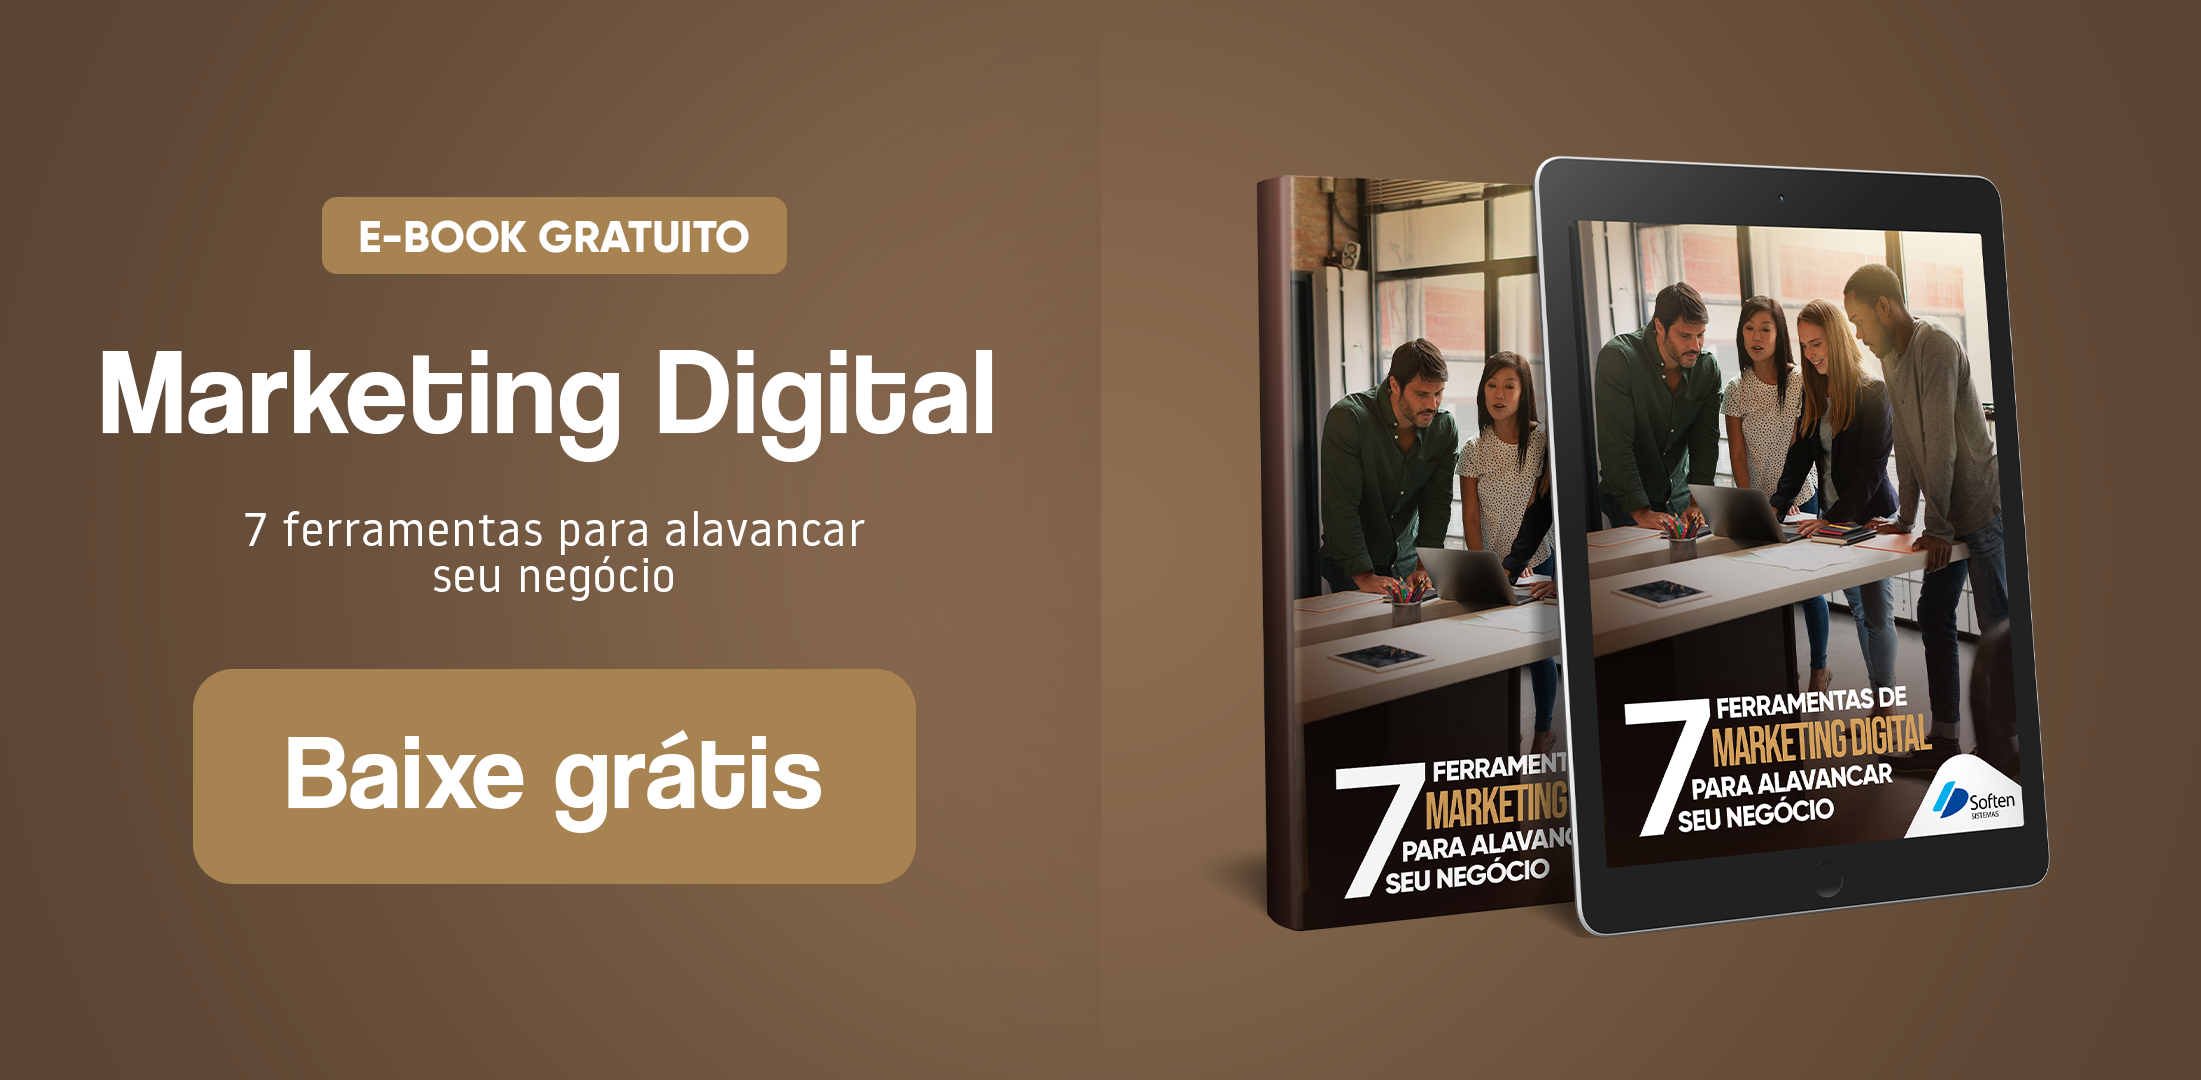 Ebook marketing digital Soften